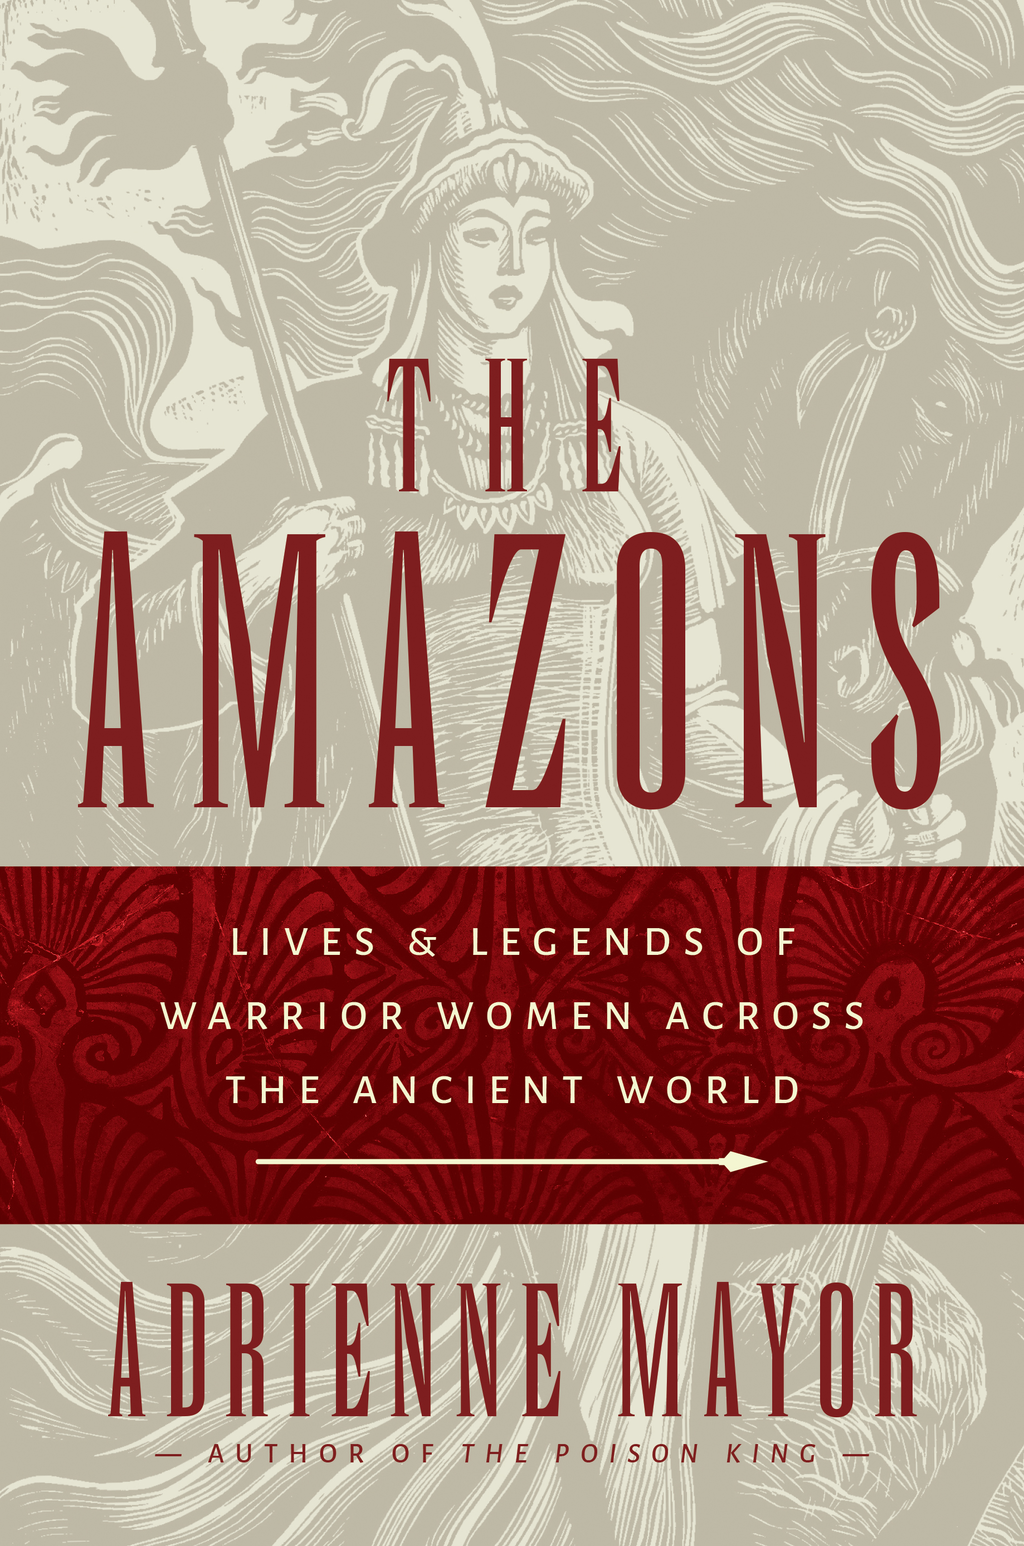 The Amazons Lives and Legends of Warrior Women across the Ancient World